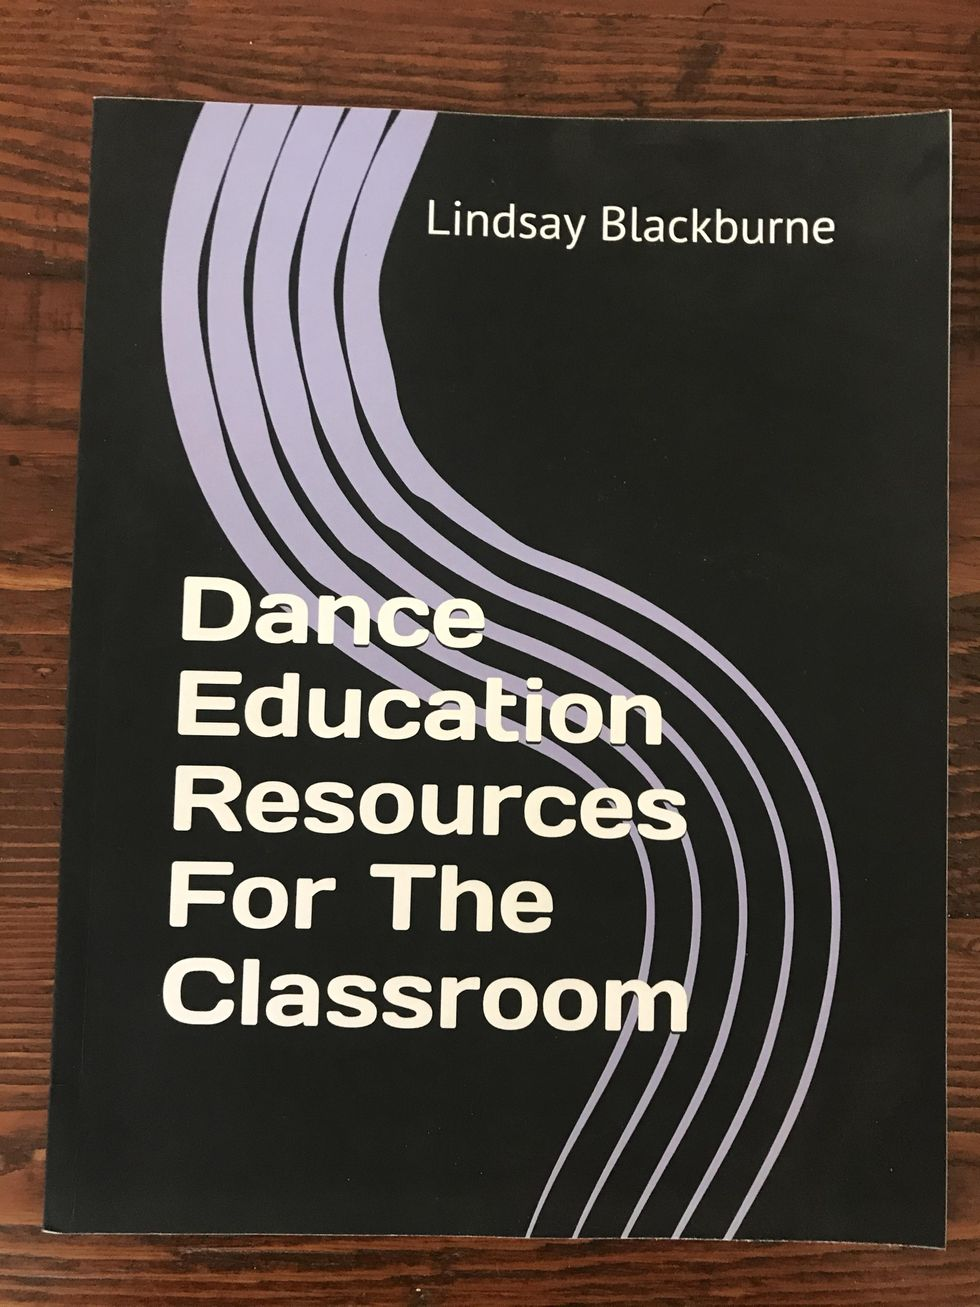 Dance Education Resources for the Classroom lays flat on a wooden table. It is a black paperback book with white text and light purple squiggly lines